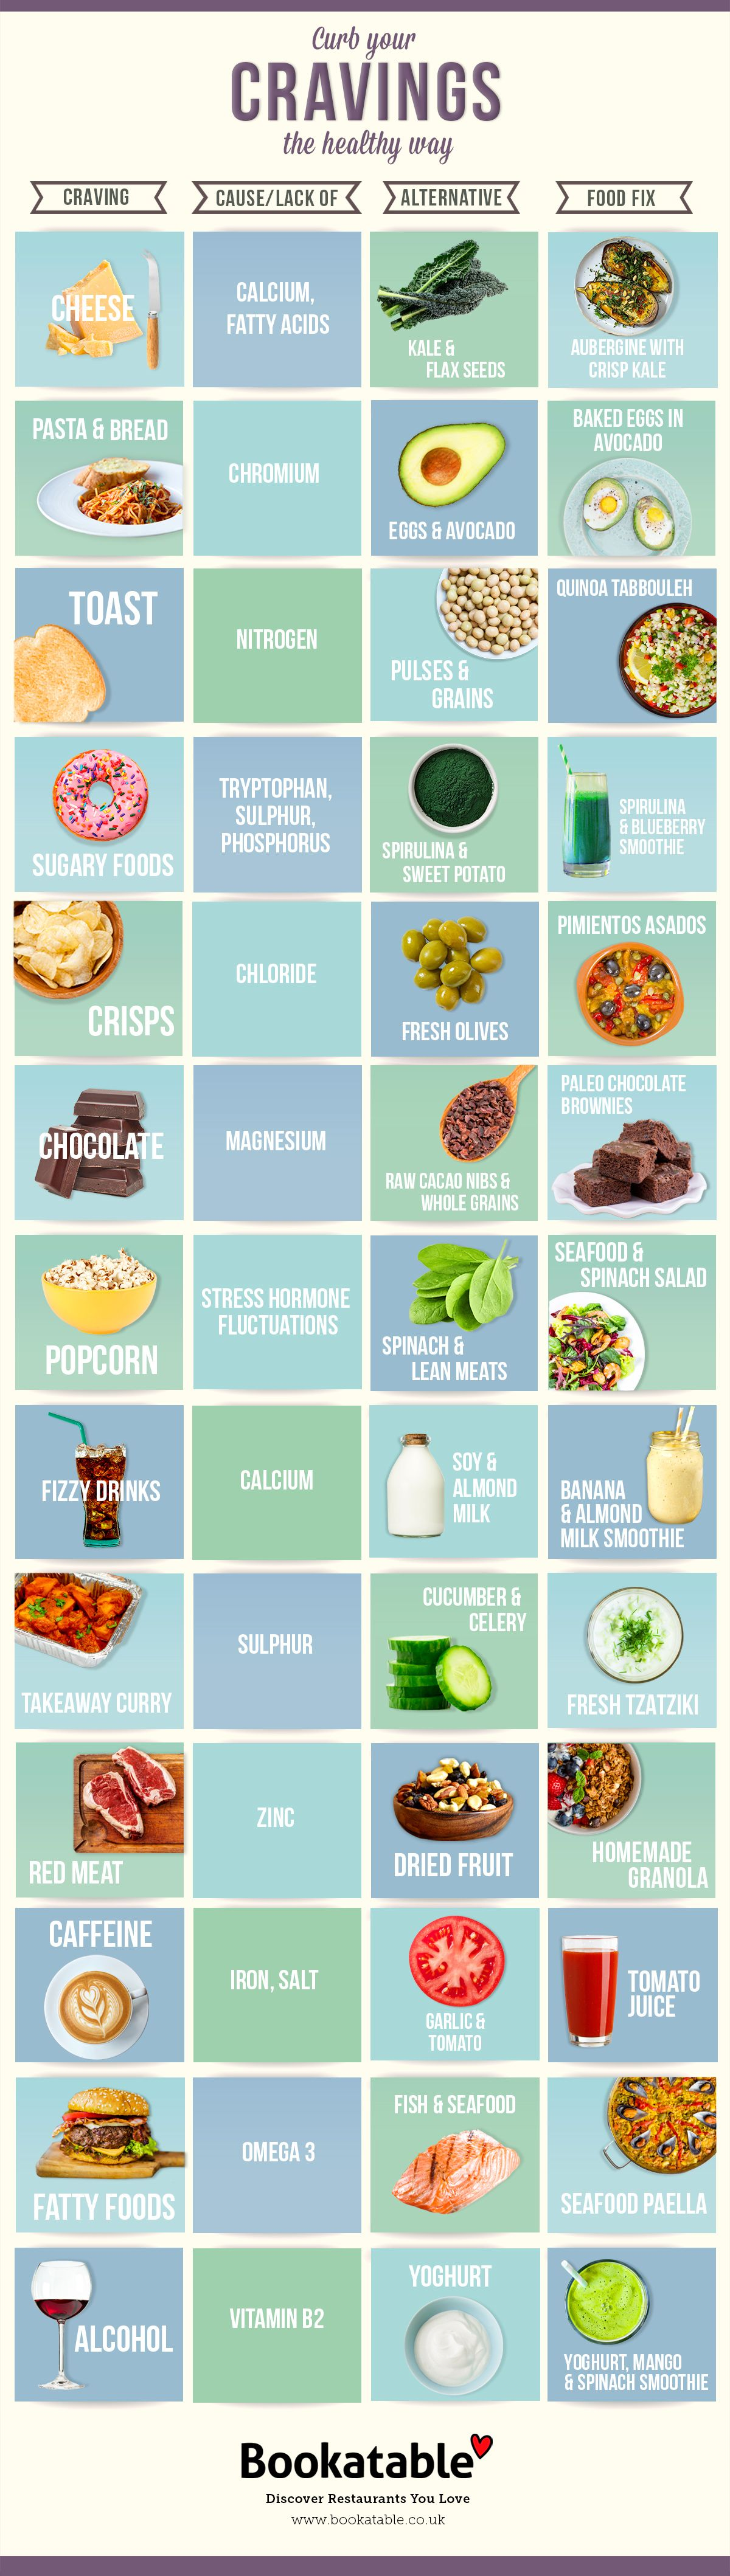 How To Stop Food And Sugar Cravings